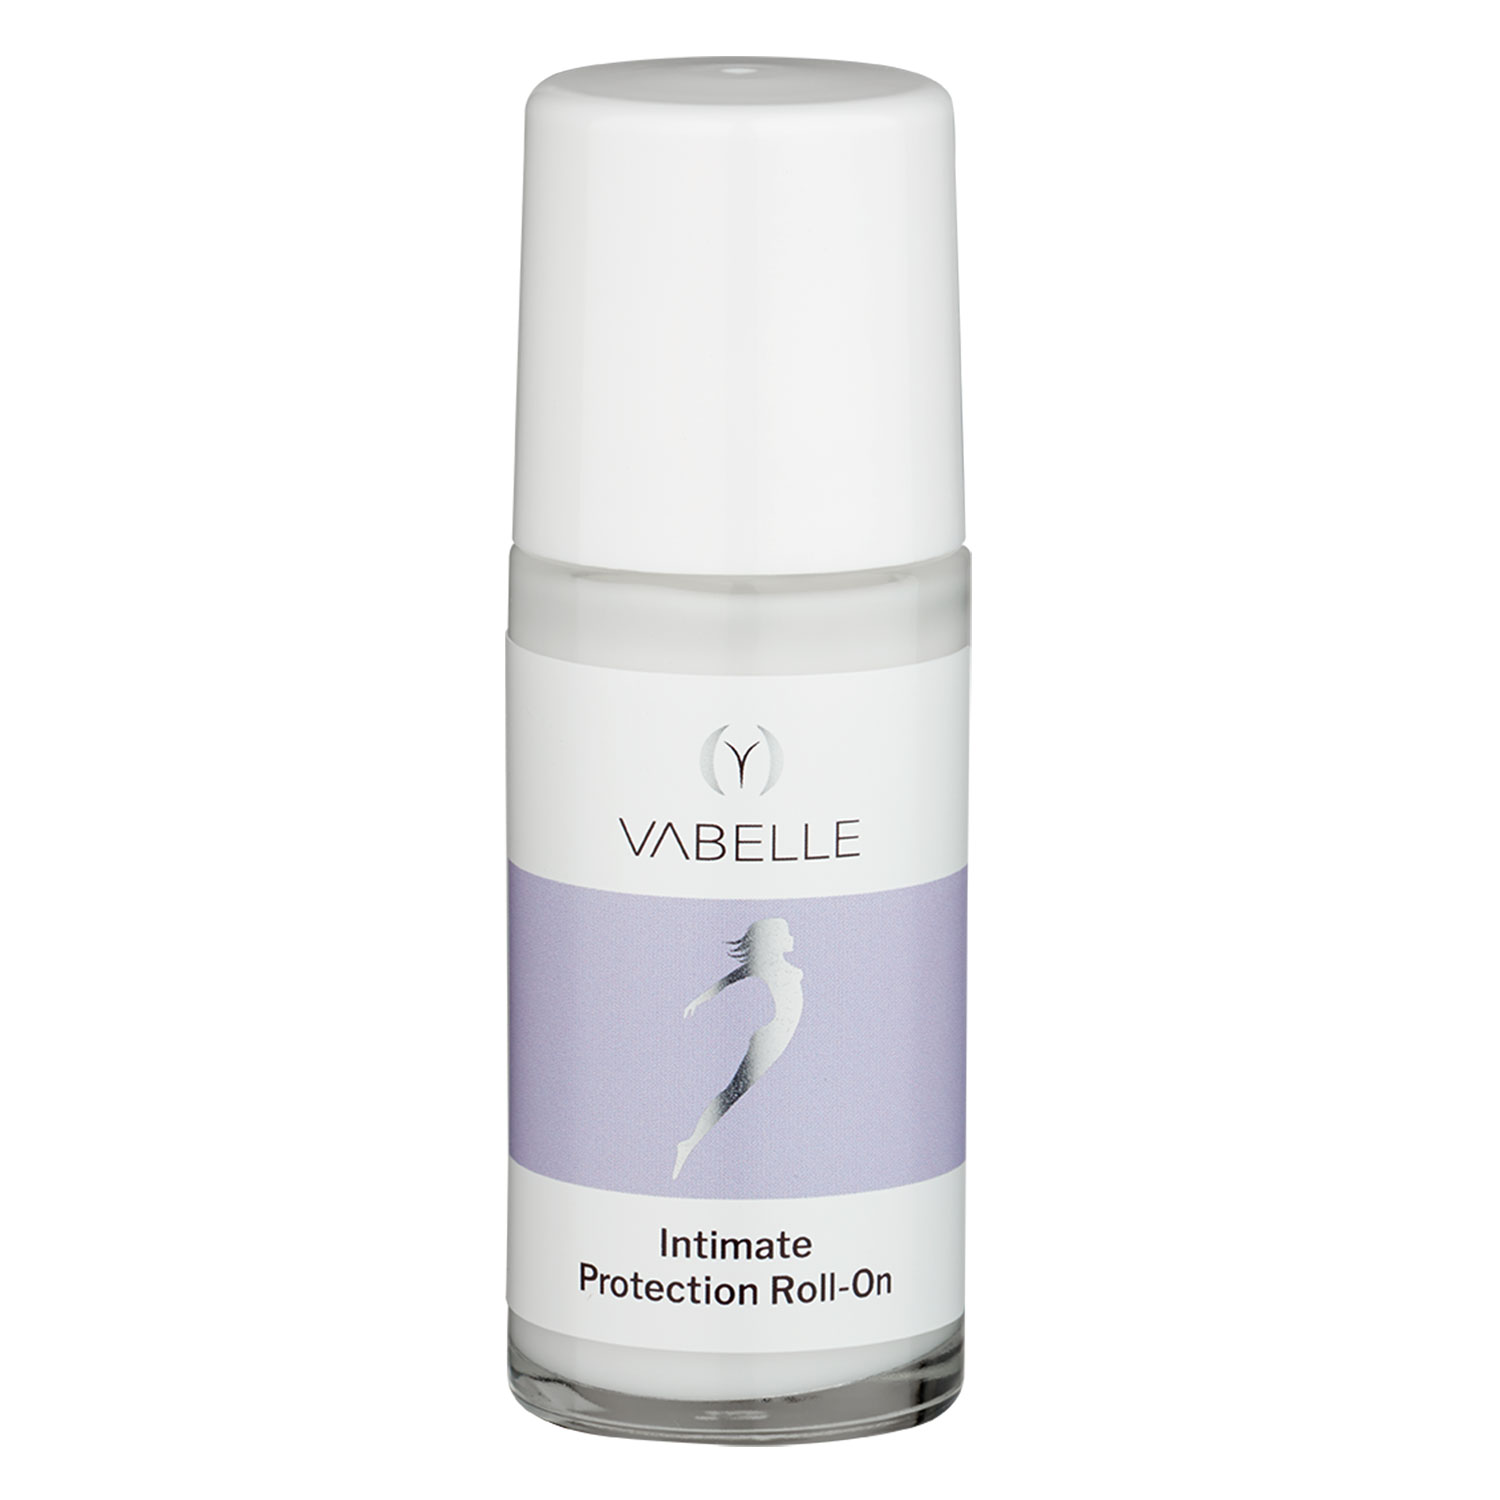 Vabelle - Intimate Protection Roll-On